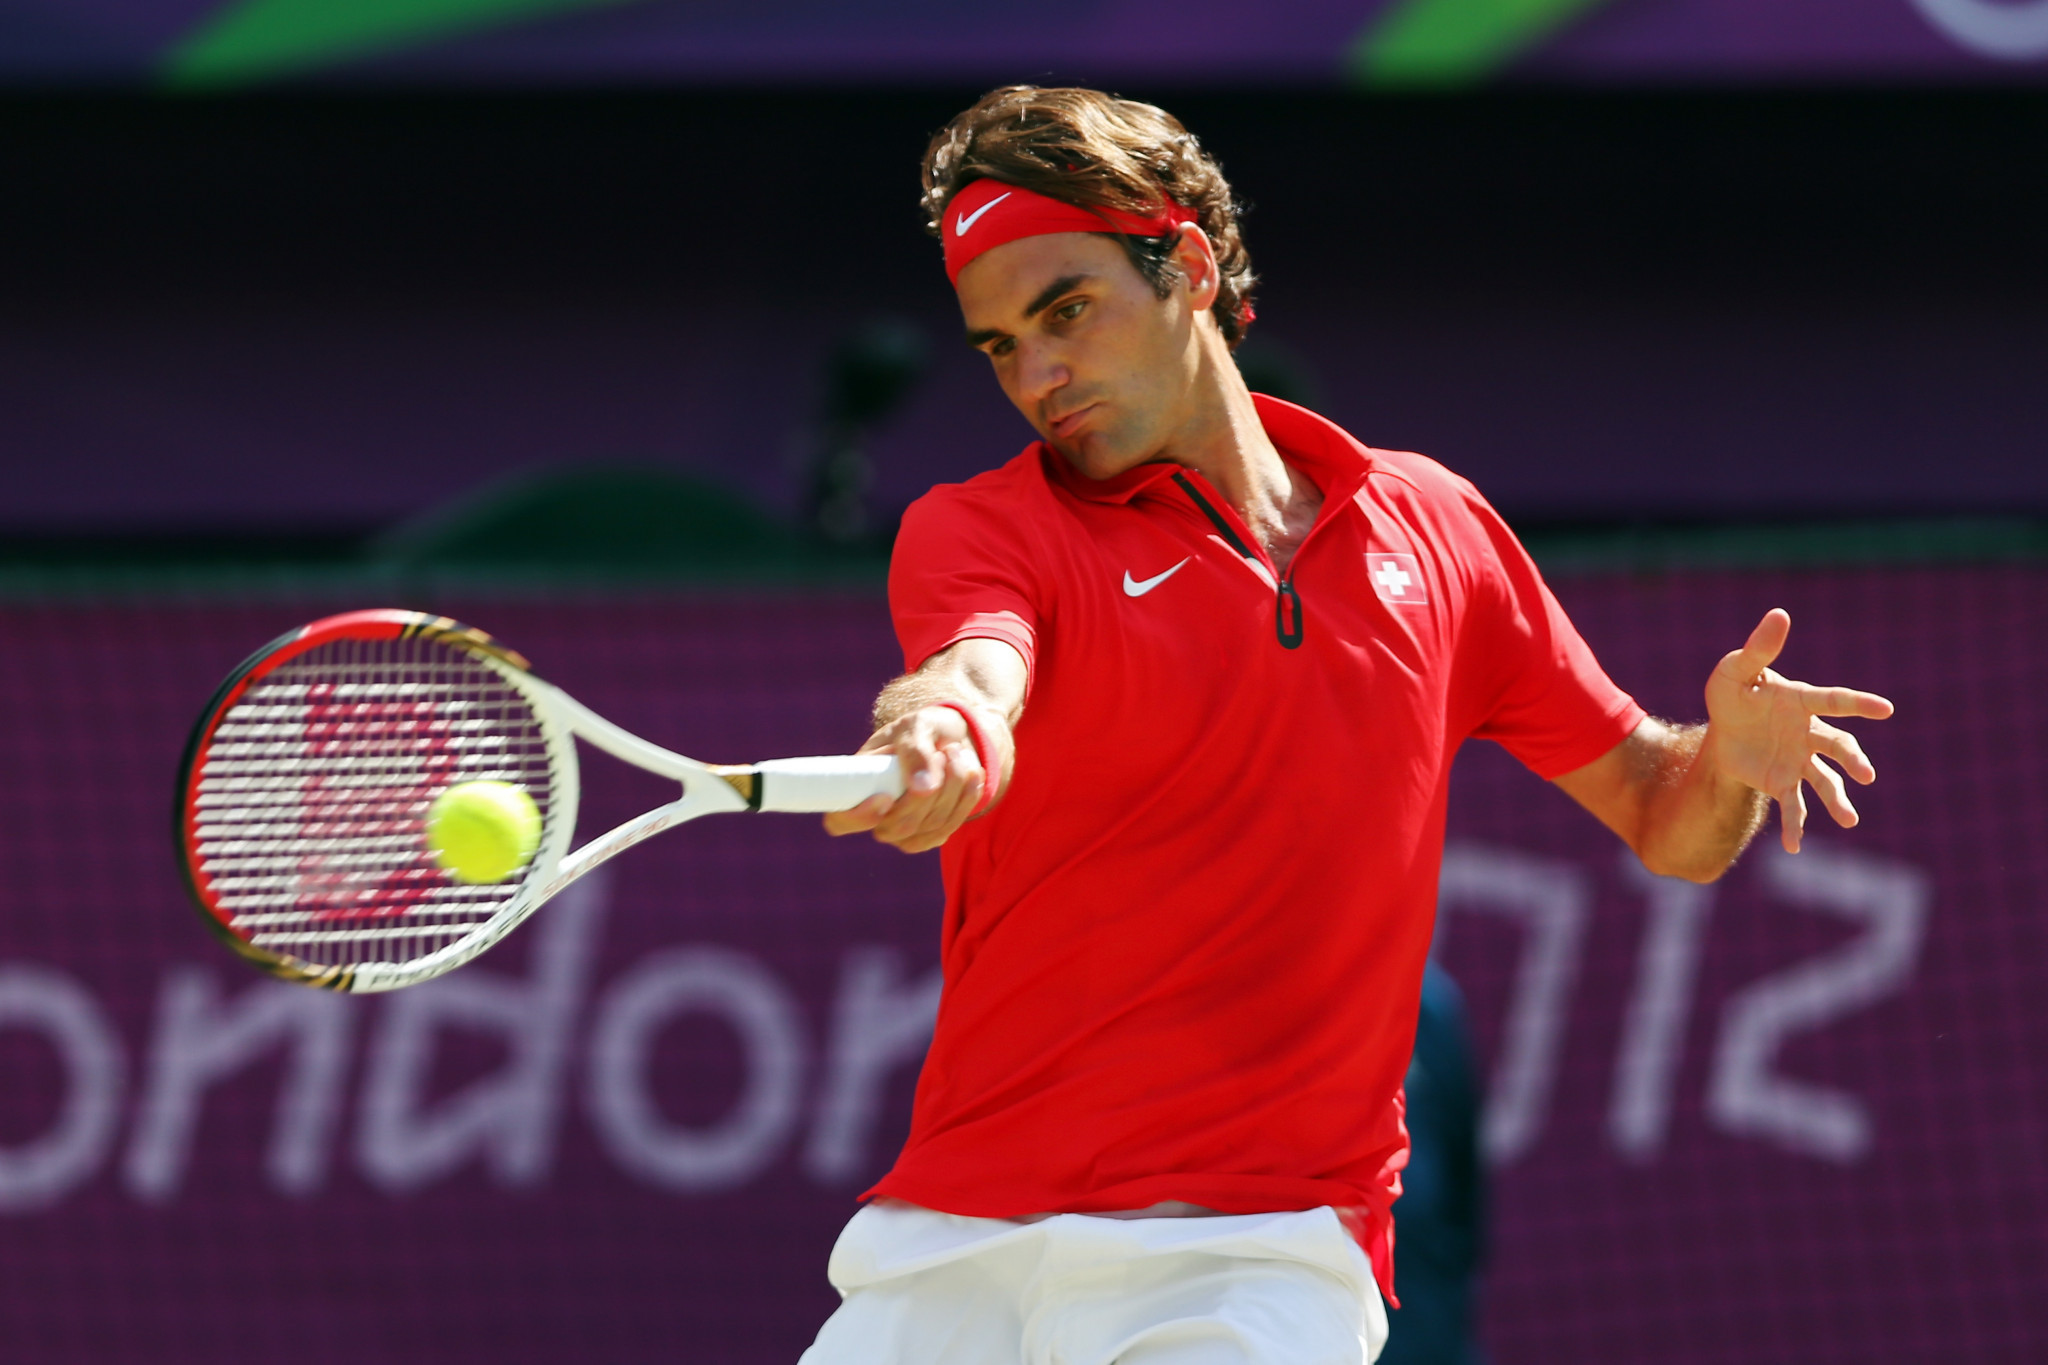 Roger Federer earned an Olympic silver medal in the singles competition at London 2012 ©Getty Images